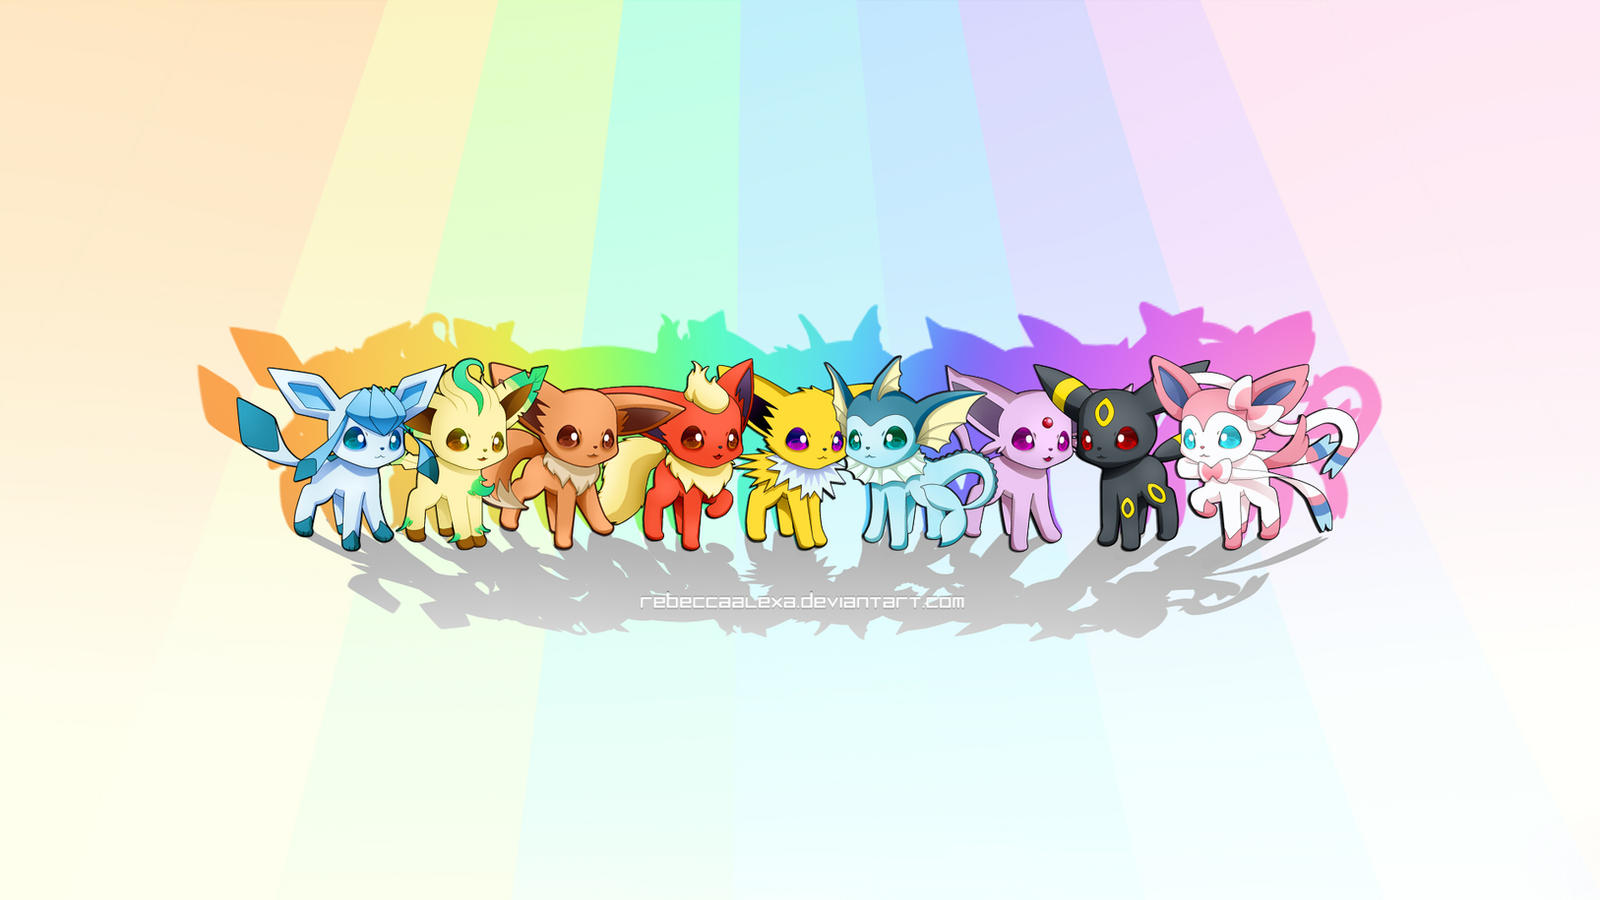 eeveelutions chibi wallpaper - photo #19